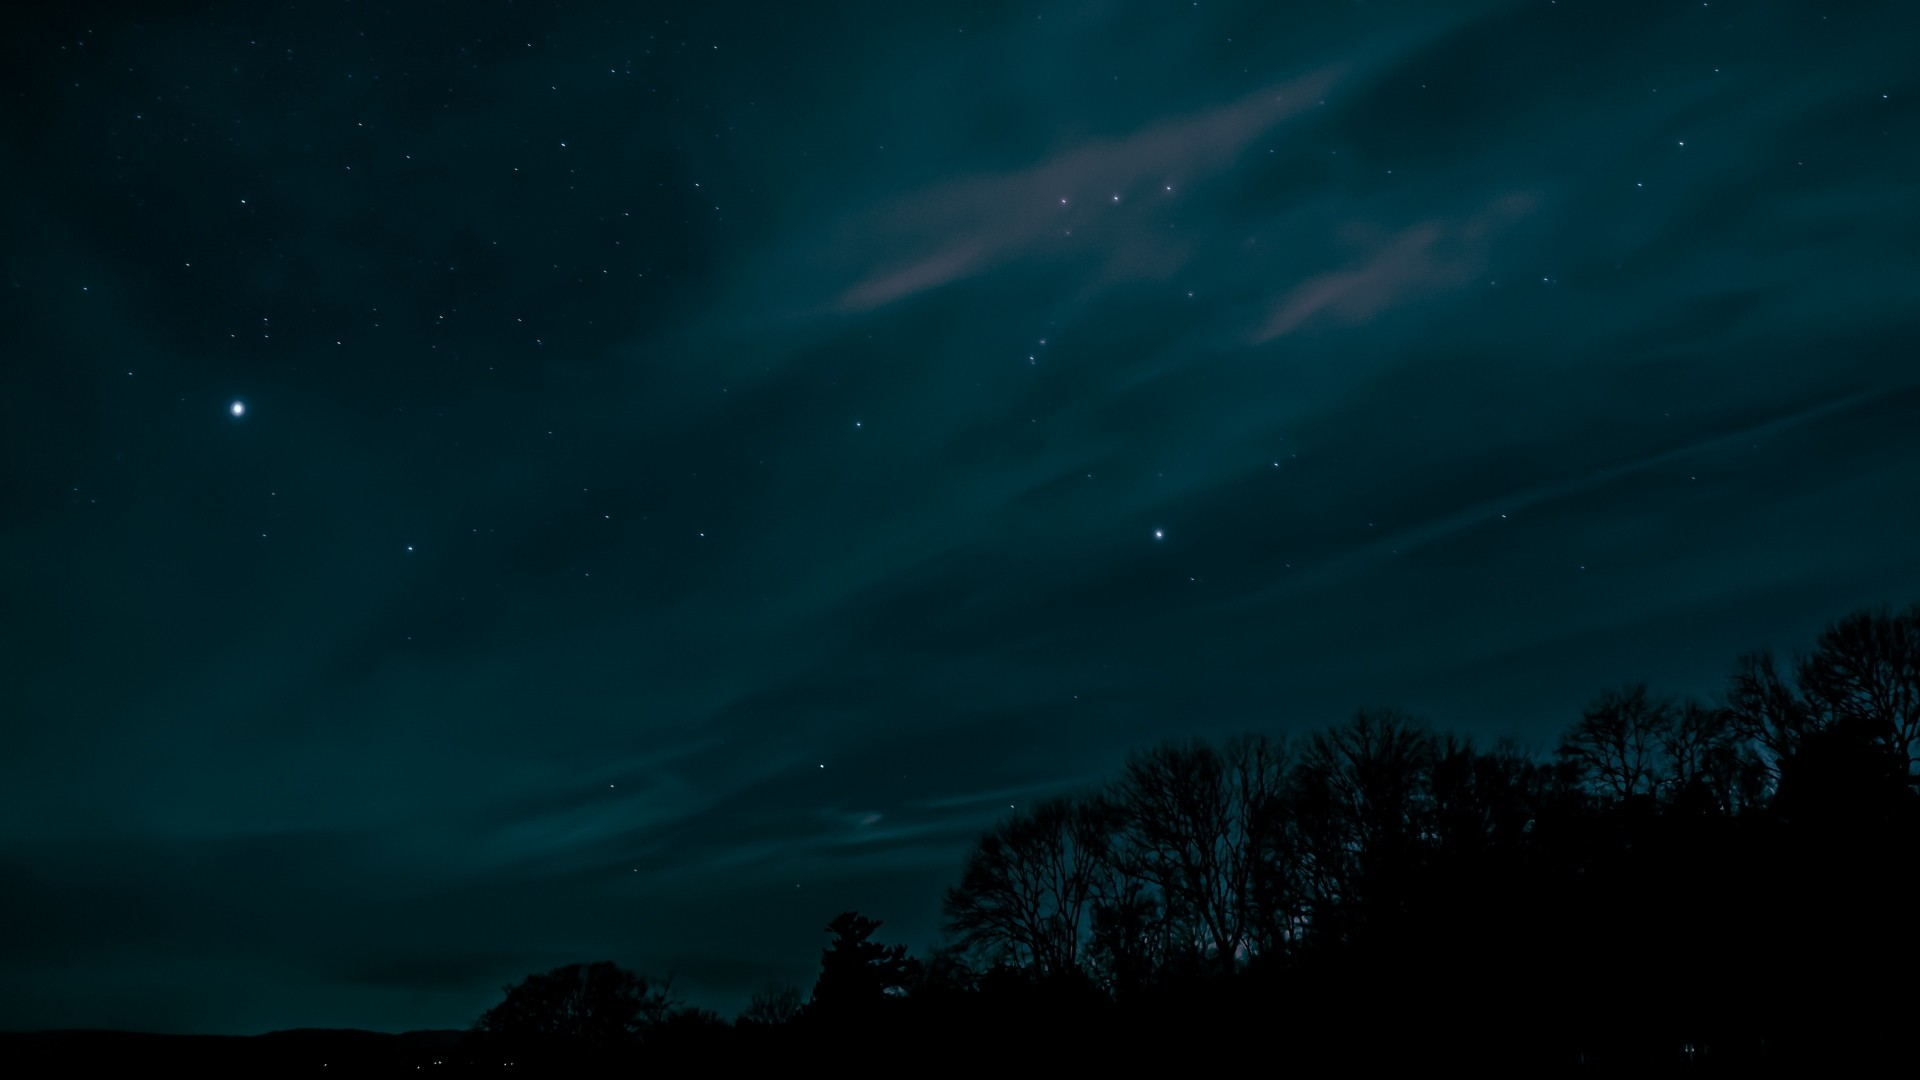 Animated Night Sky Wallpaper (51+ Images